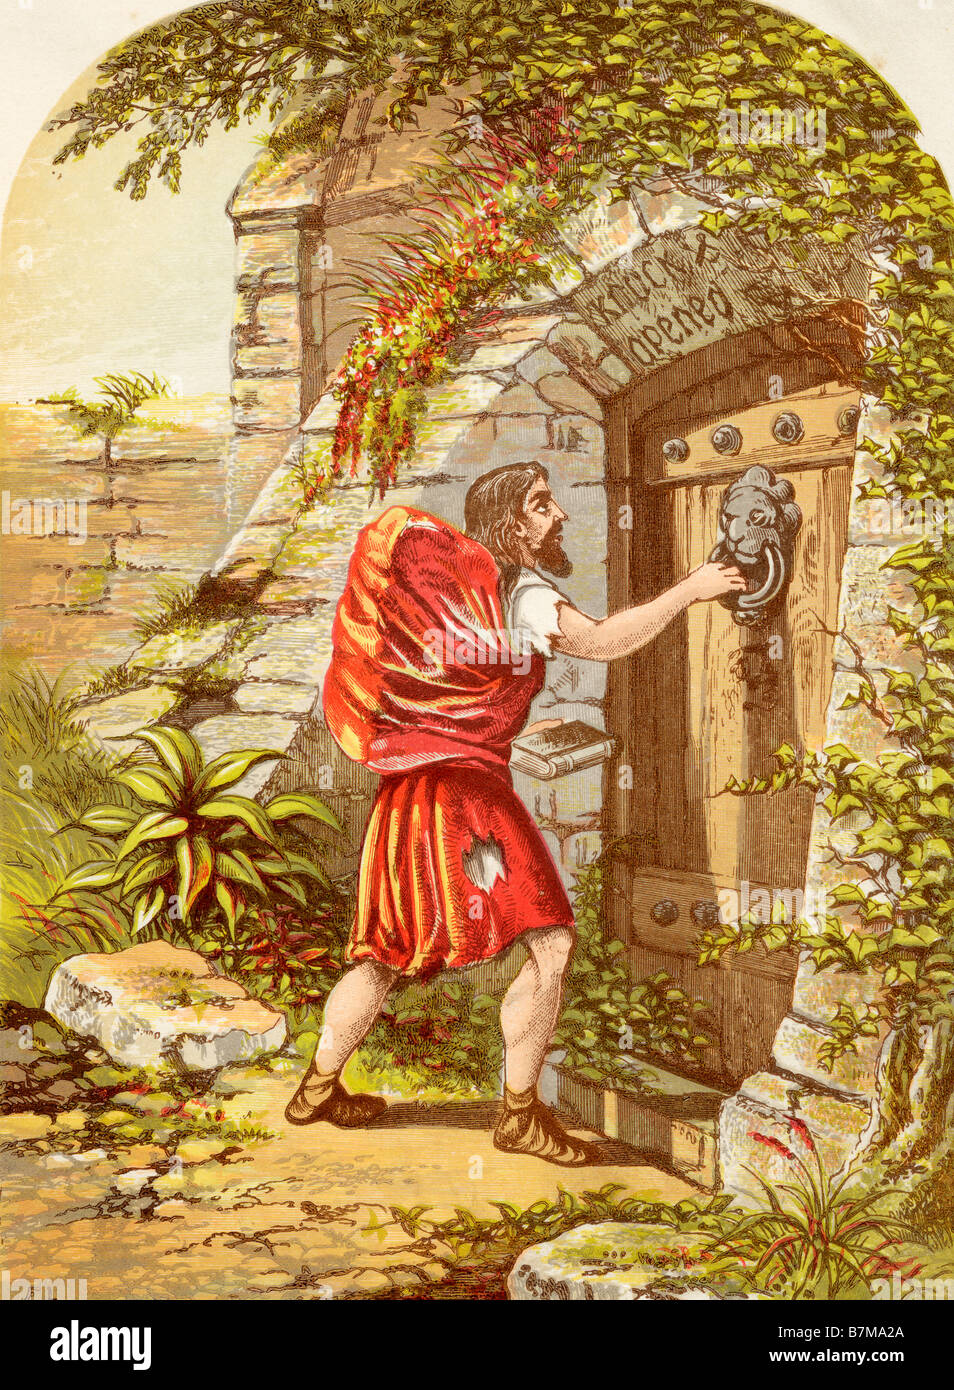 Christian at the Gate. Illustration by A F Lydon. From the book The Pilgrims Progress by John Bunyan, published - Stock Image